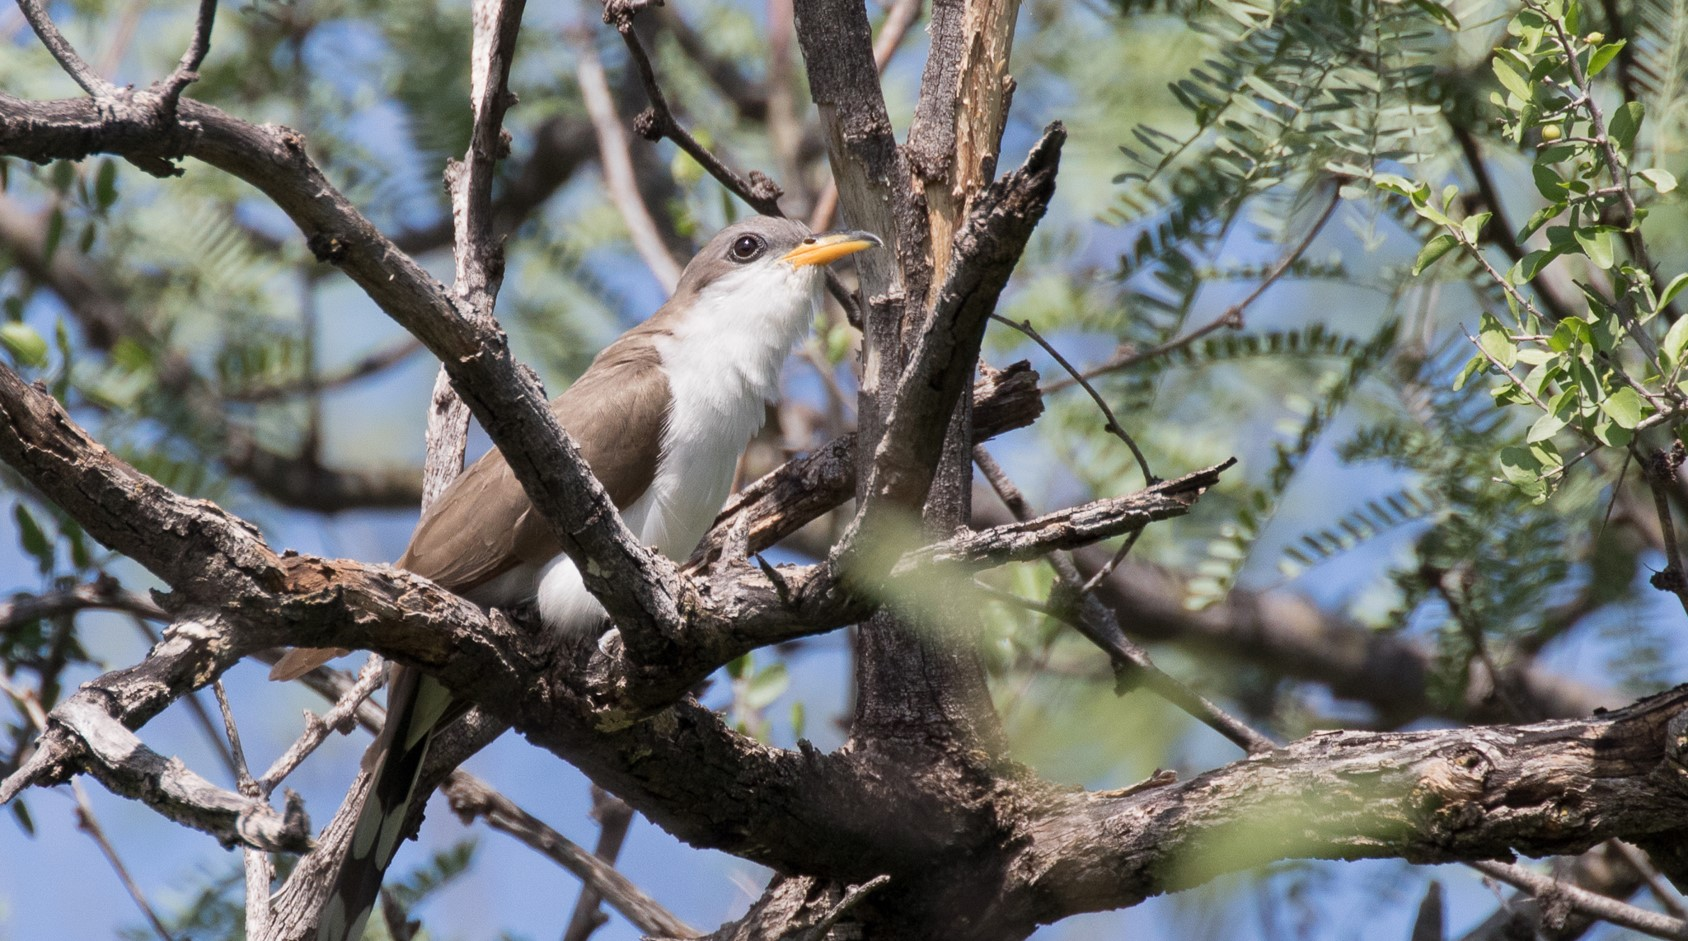 A Yellow-billed Cuckoo perches on a branch of a mesquite tree, looking wistful.